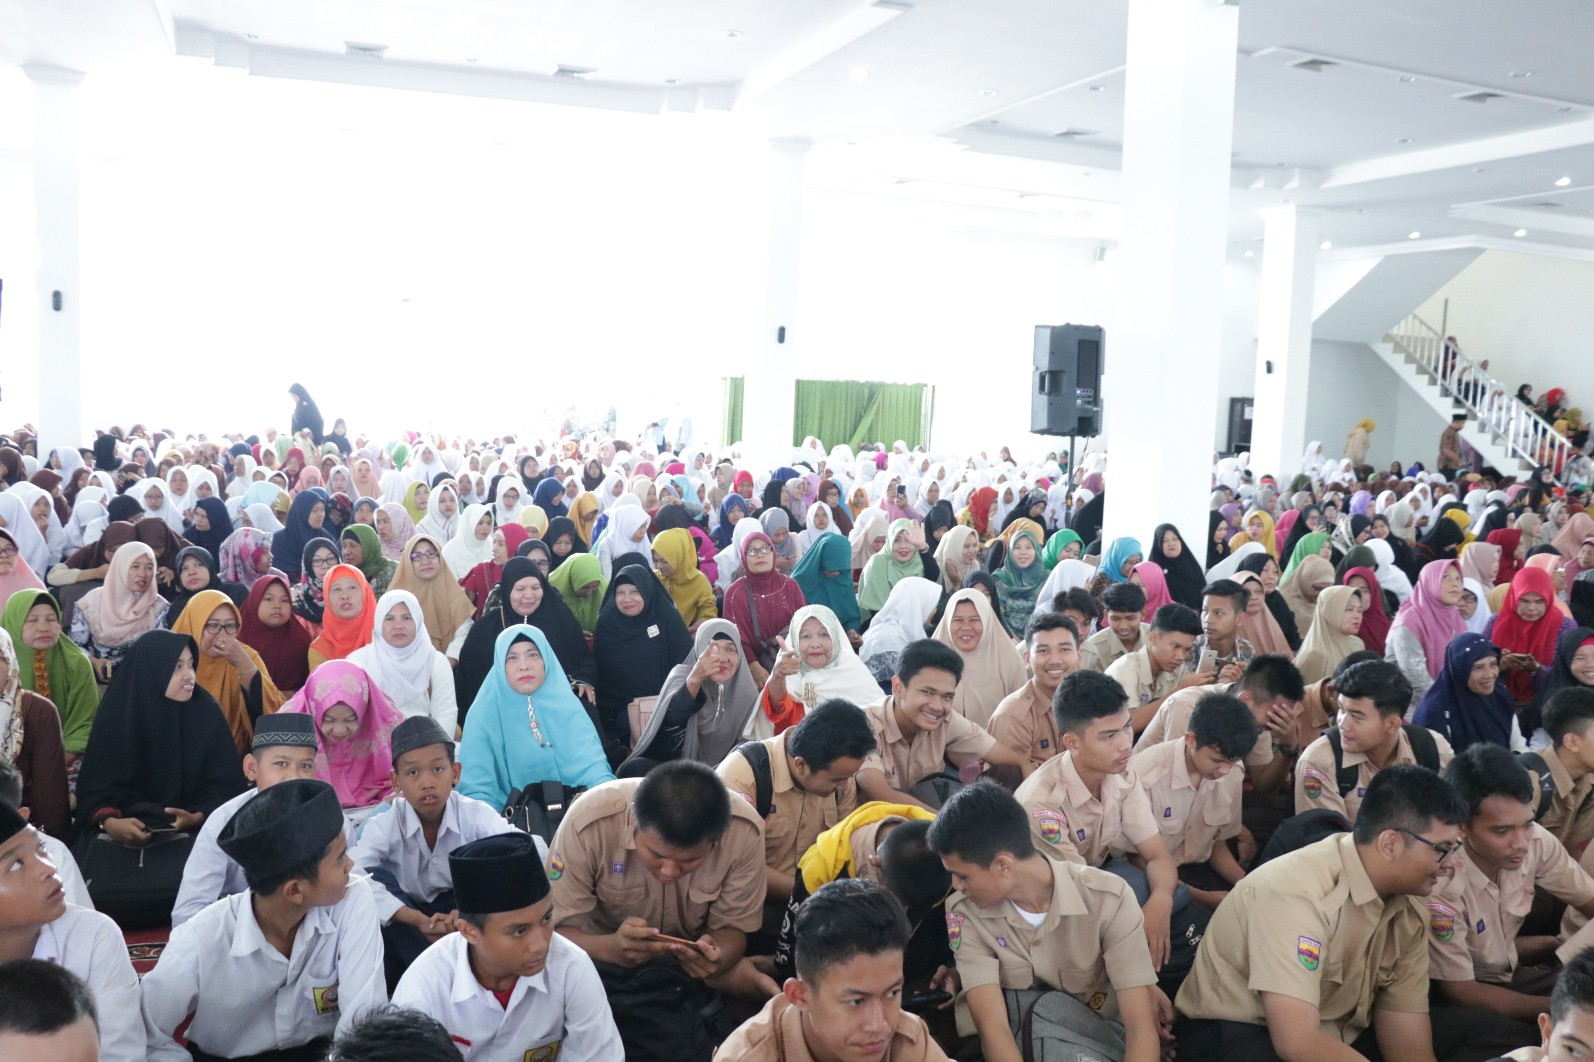 /photos/shares/berita_foto/november/MAULID NABI/IMG_5744.JPG